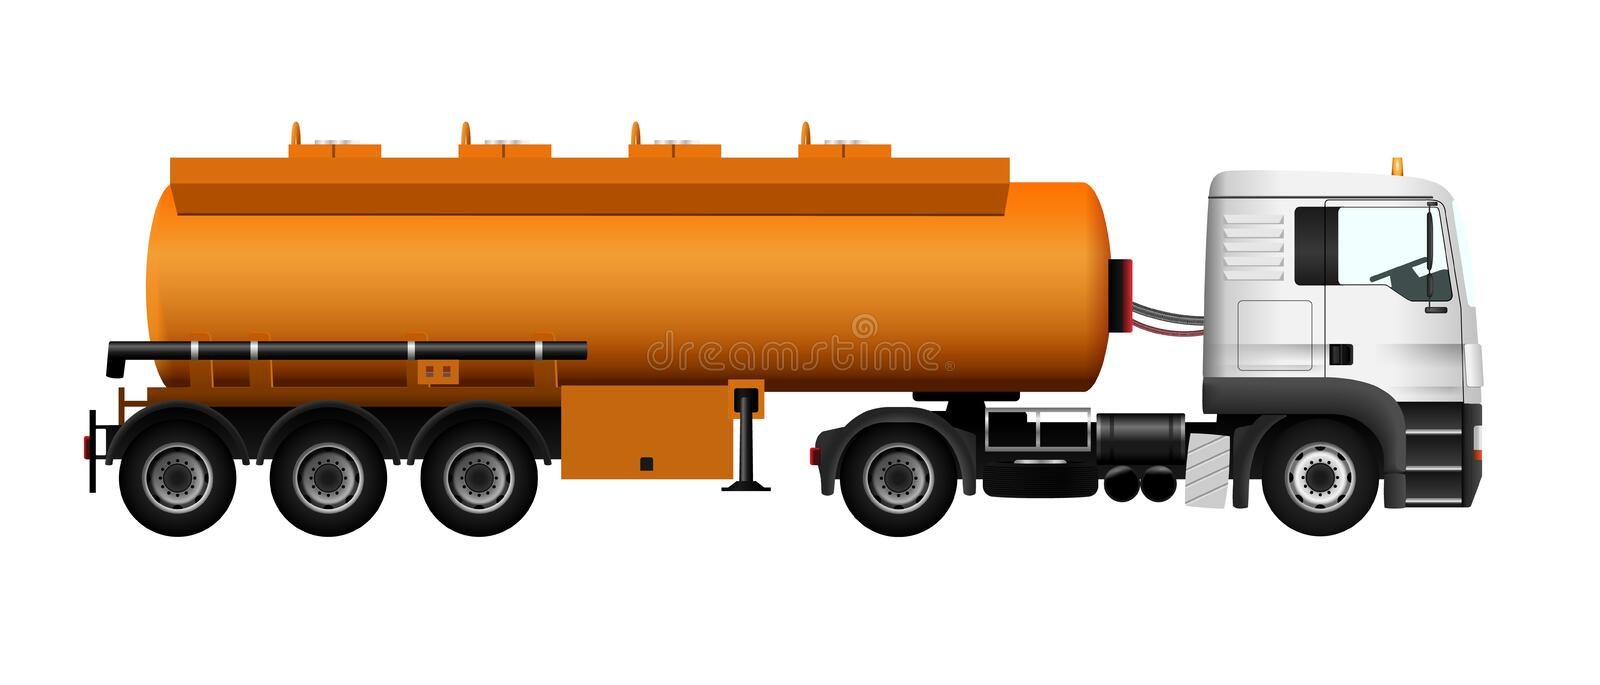 Camion-citerne aspirateur de gaz combustible illustration libre de droits